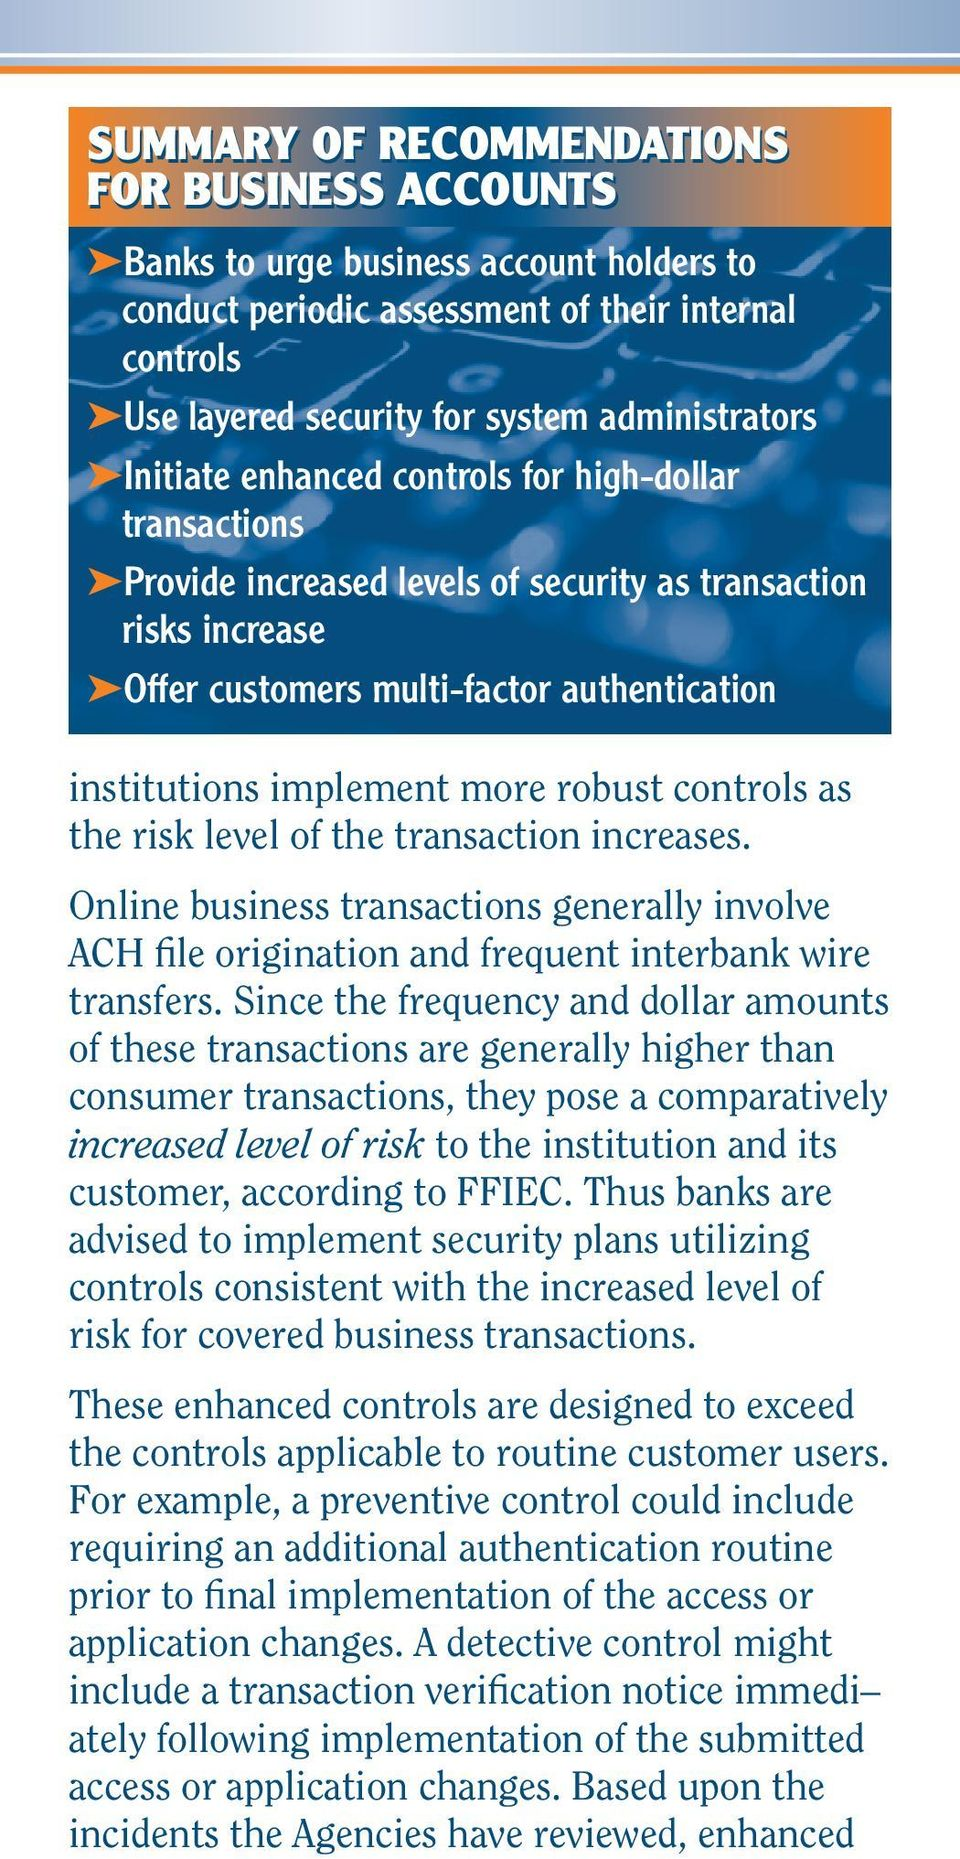 robust controls as the risk level of the transaction increases. Online business transactions generally involve ACH file origination and frequent interbank wire transfers.